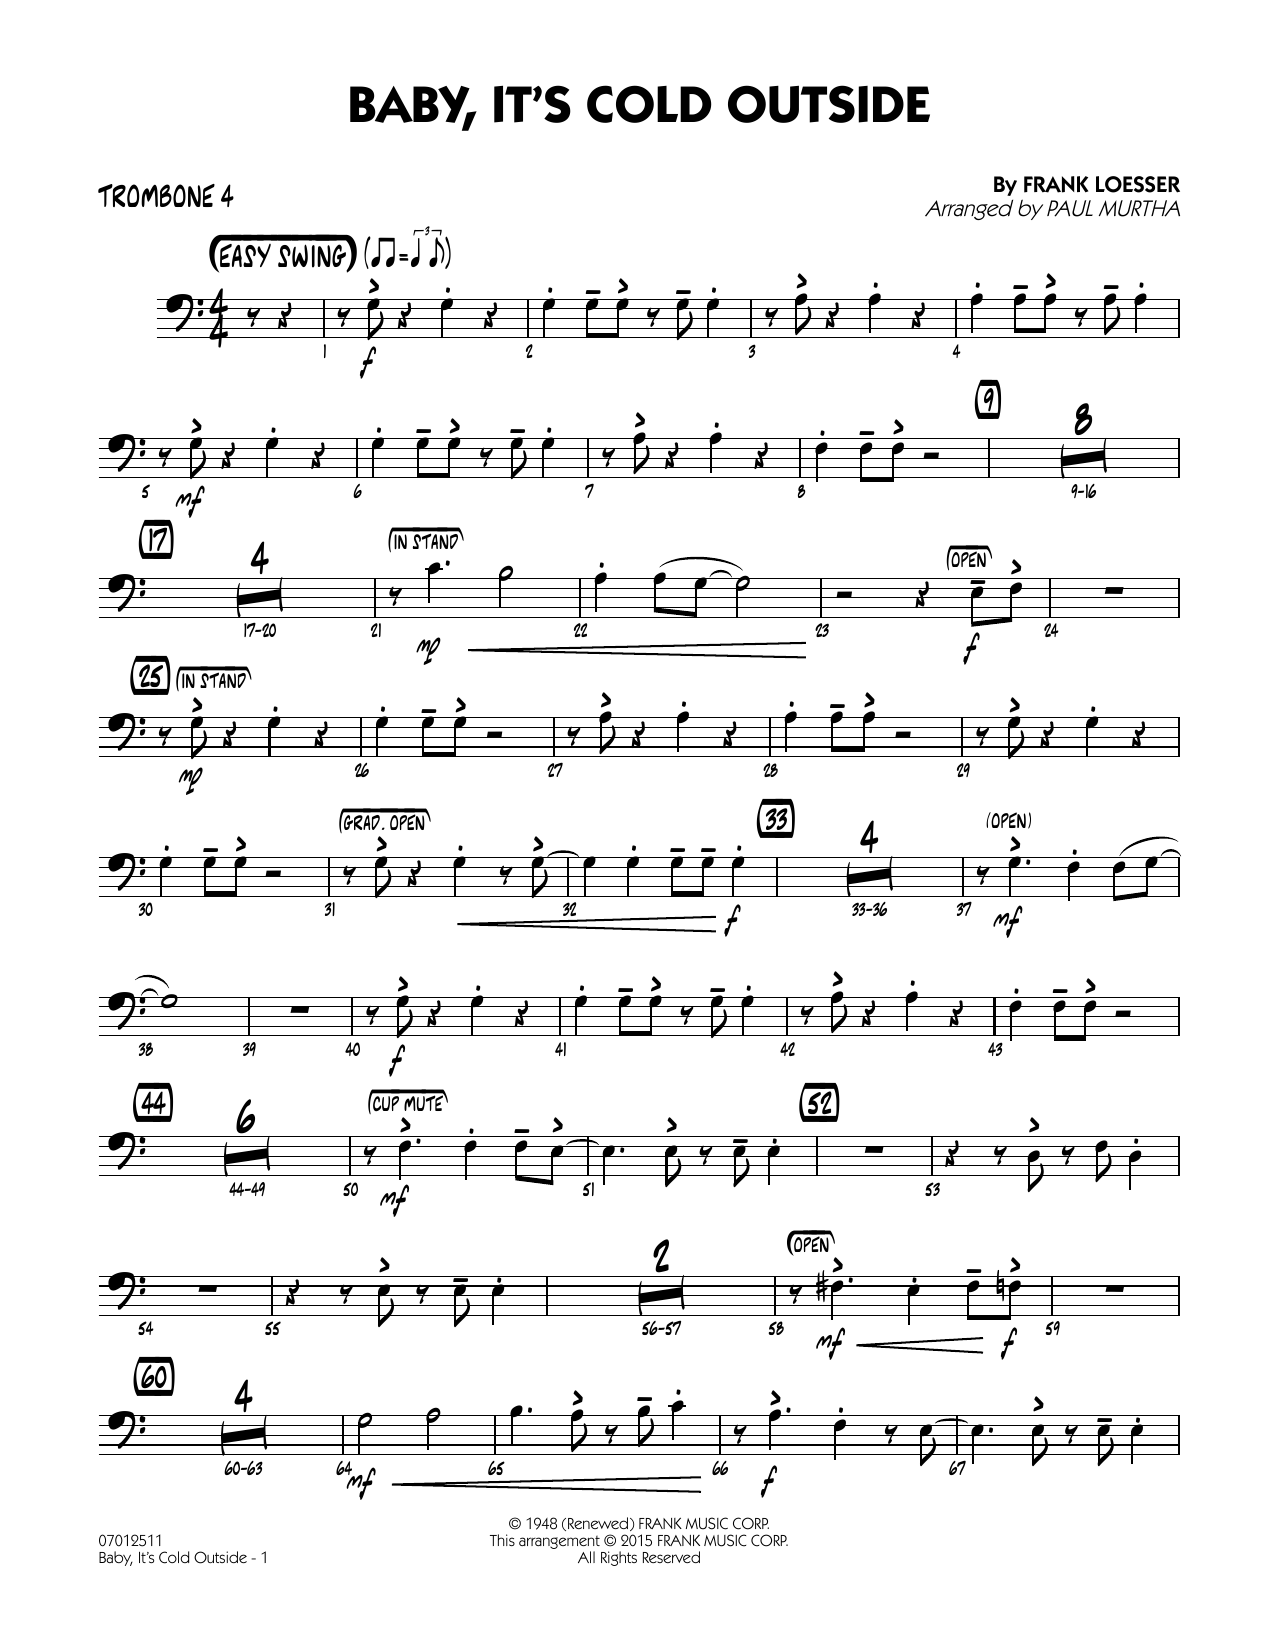 Paul Murtha Baby, It's Cold Outside (Key: C) - Trombone 4 sheet music notes and chords. Download Printable PDF.